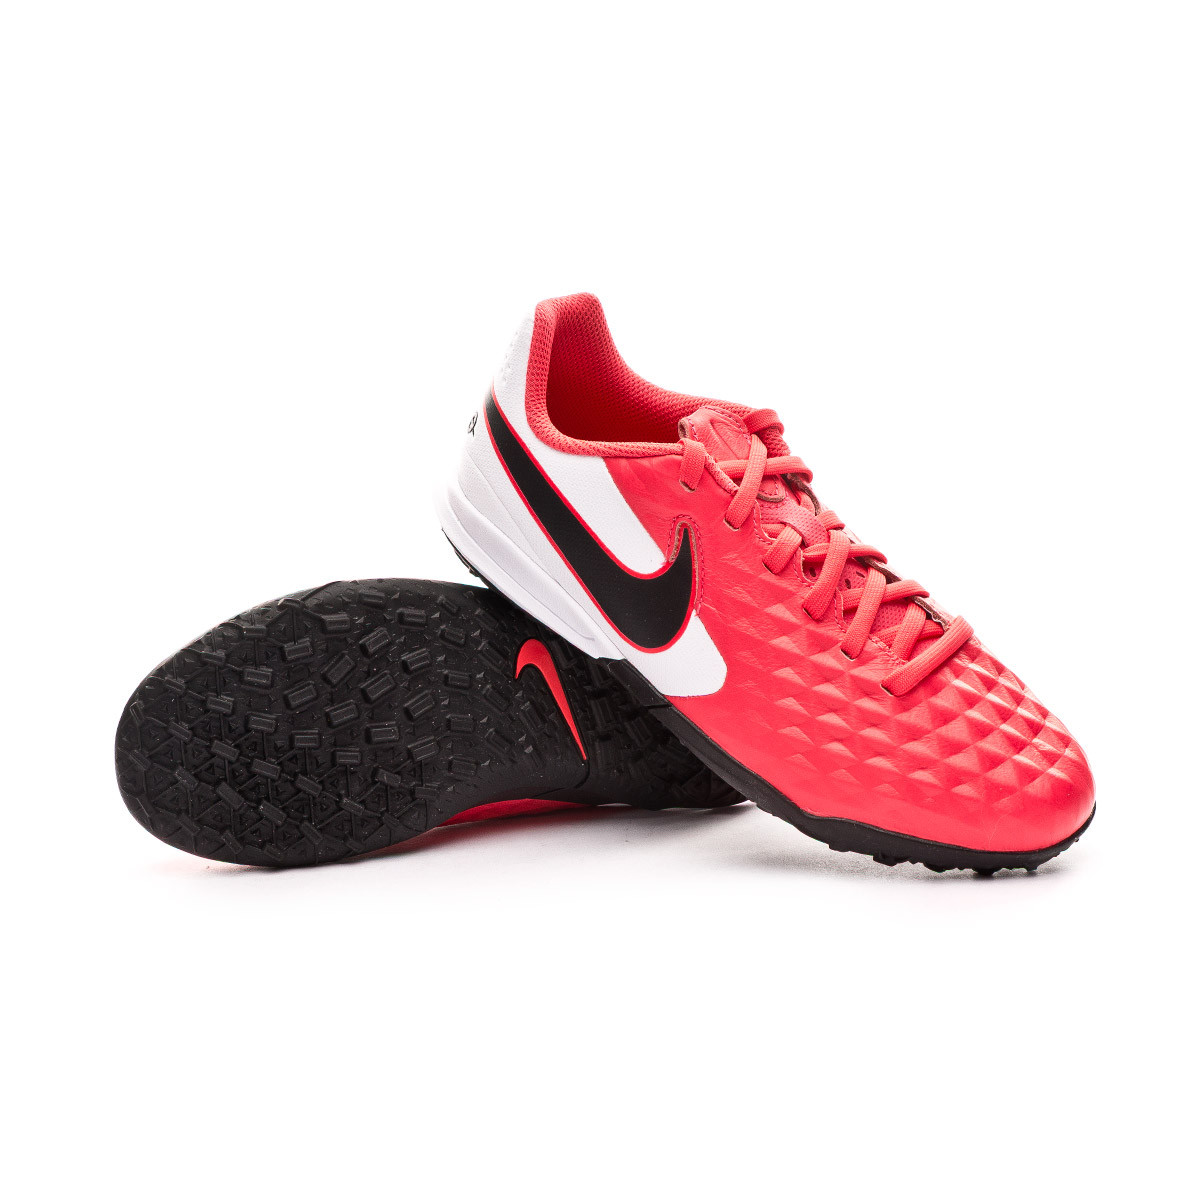 Chaussure de football Nike Tiempo Legend VIII Academy Turf Enfant